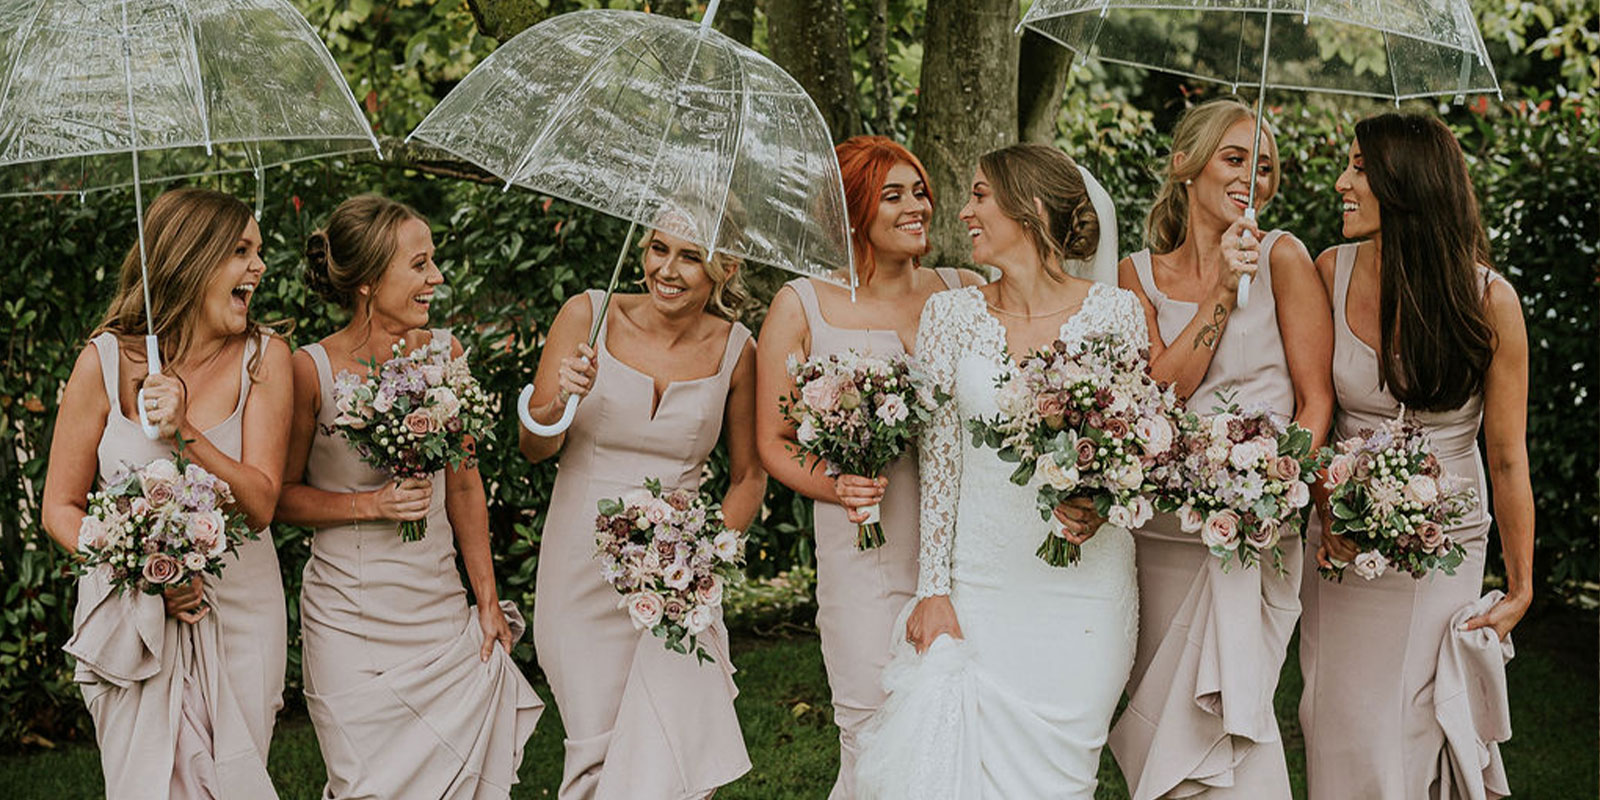 Wedding photography at Chic Weddings Kent